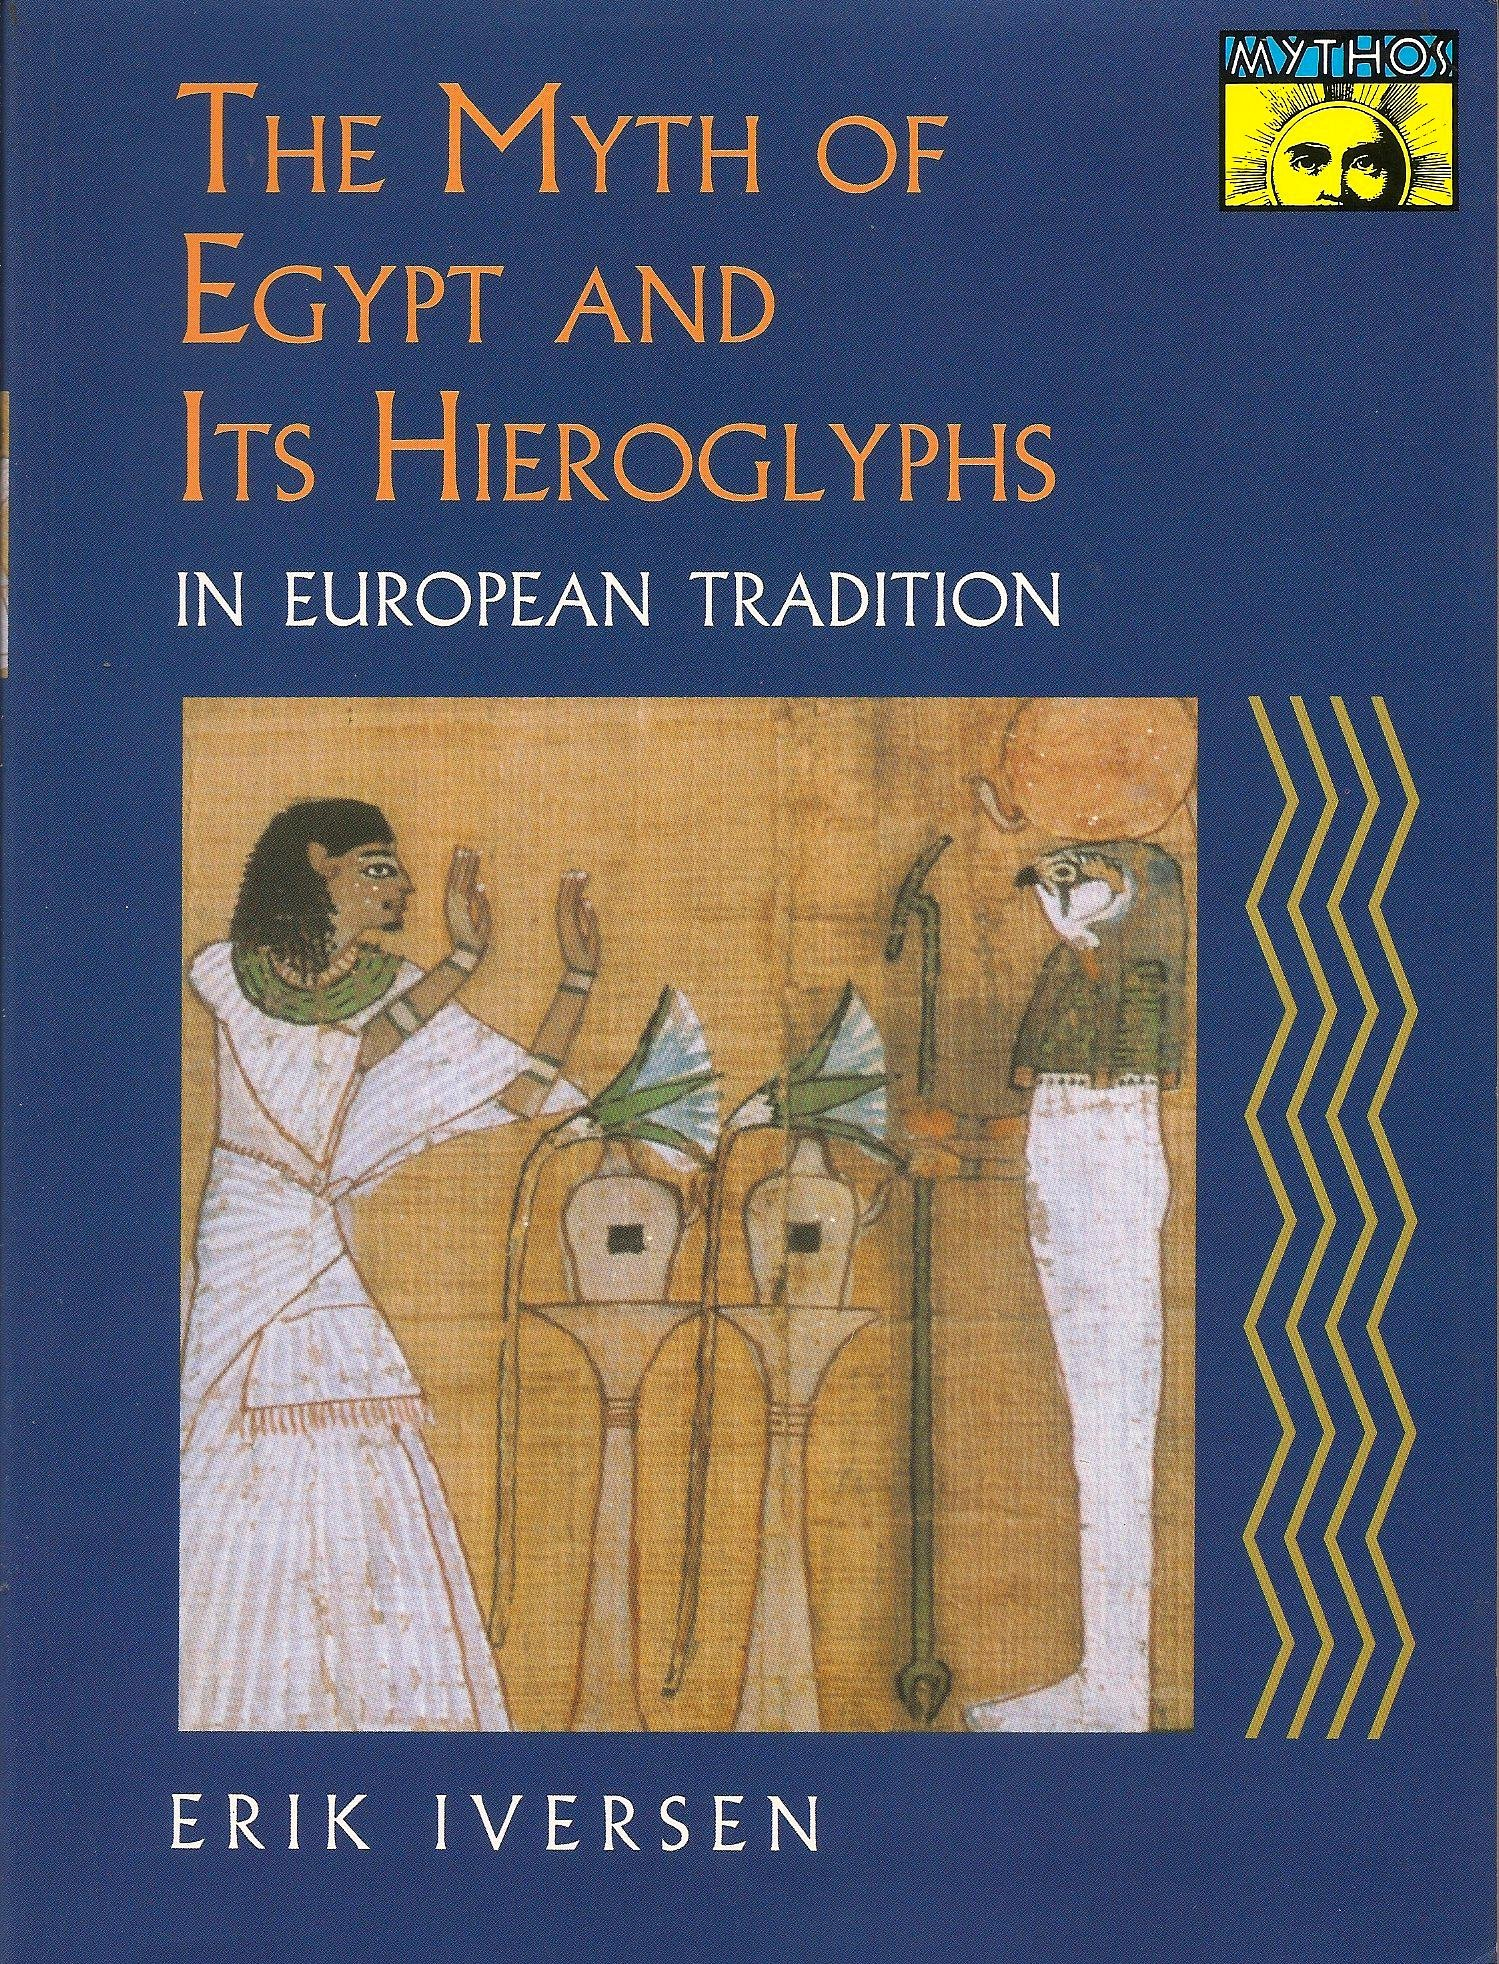 The Myth Of Egypt And Its Hieroglyphs In European Tradition  MYTHOS  THE PRINCETON BOLLINGEN SERIES IN WORLD MYTHOLOGY